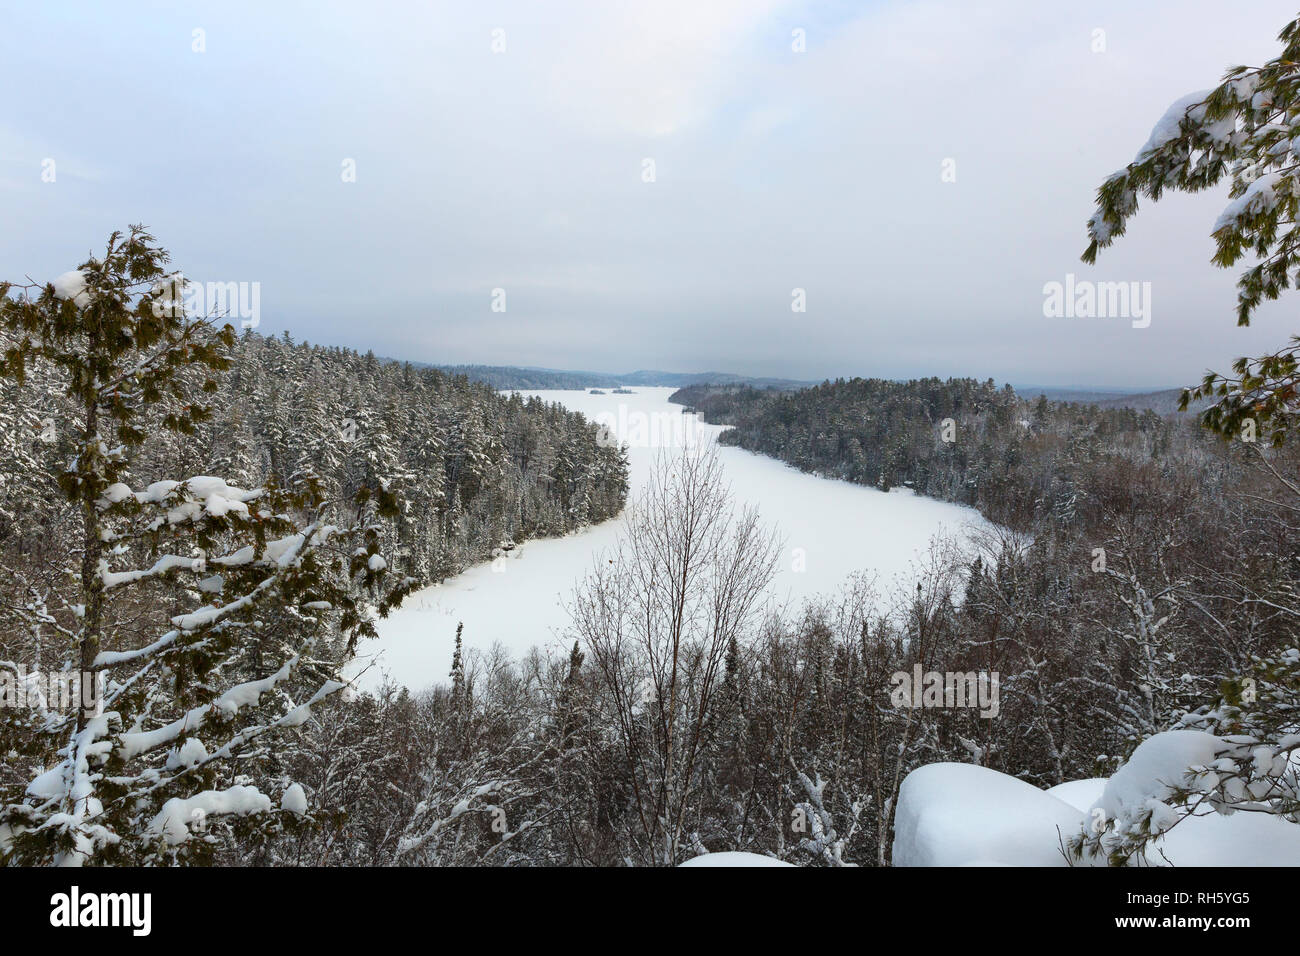 Scenic overlook at West Bear Skin Lake along the Caribou Rock Trail in the Boundary Waters Canoe Area Wilderness BWCA in Northern Minnesota, USA - Stock Image